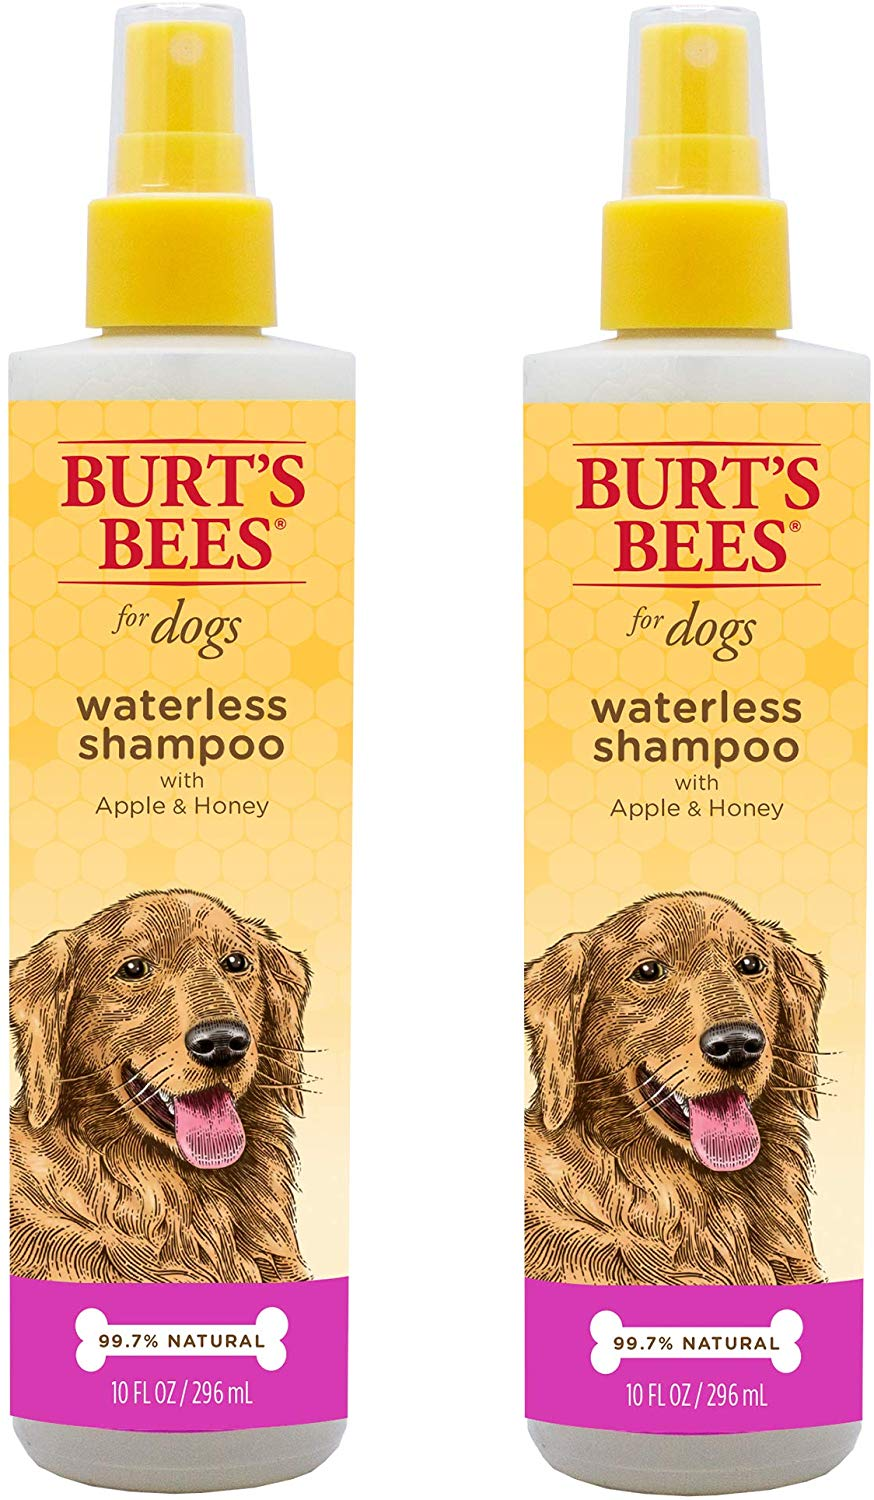 Burt's Bees All Natural Waterless Shampoo Spray for Dogs